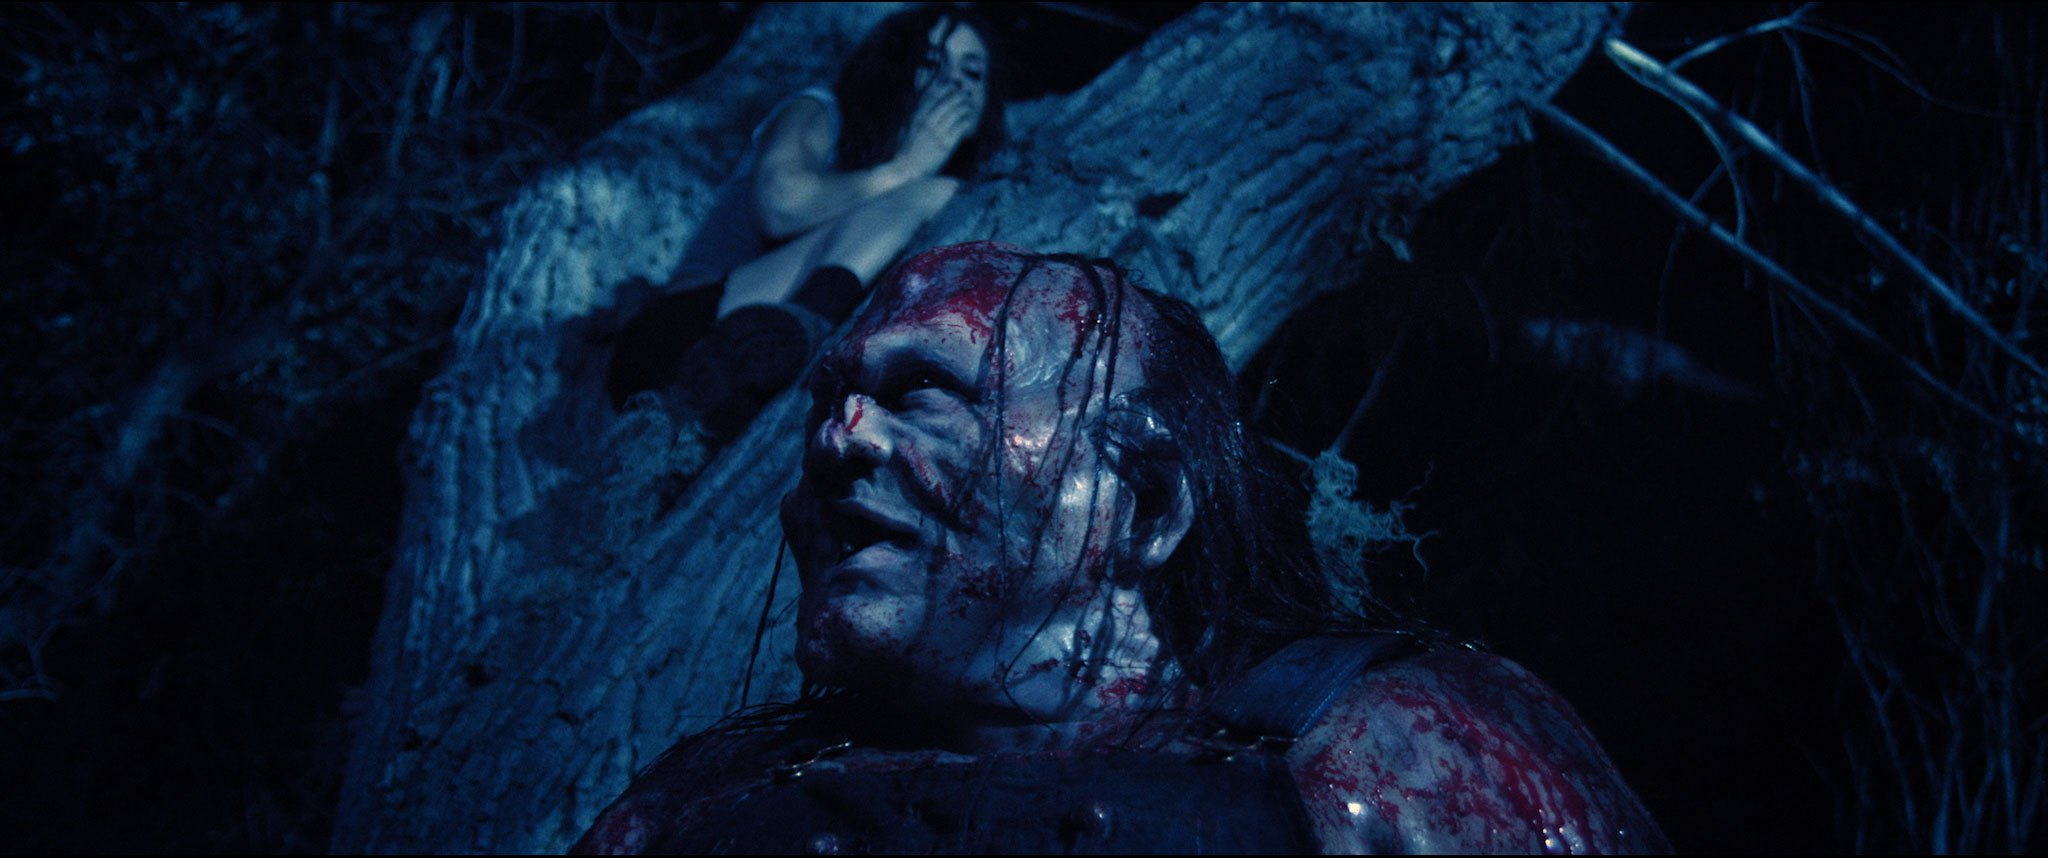 Honey Island Swamp Beckons In Chilling New Stills For Victor Crowley